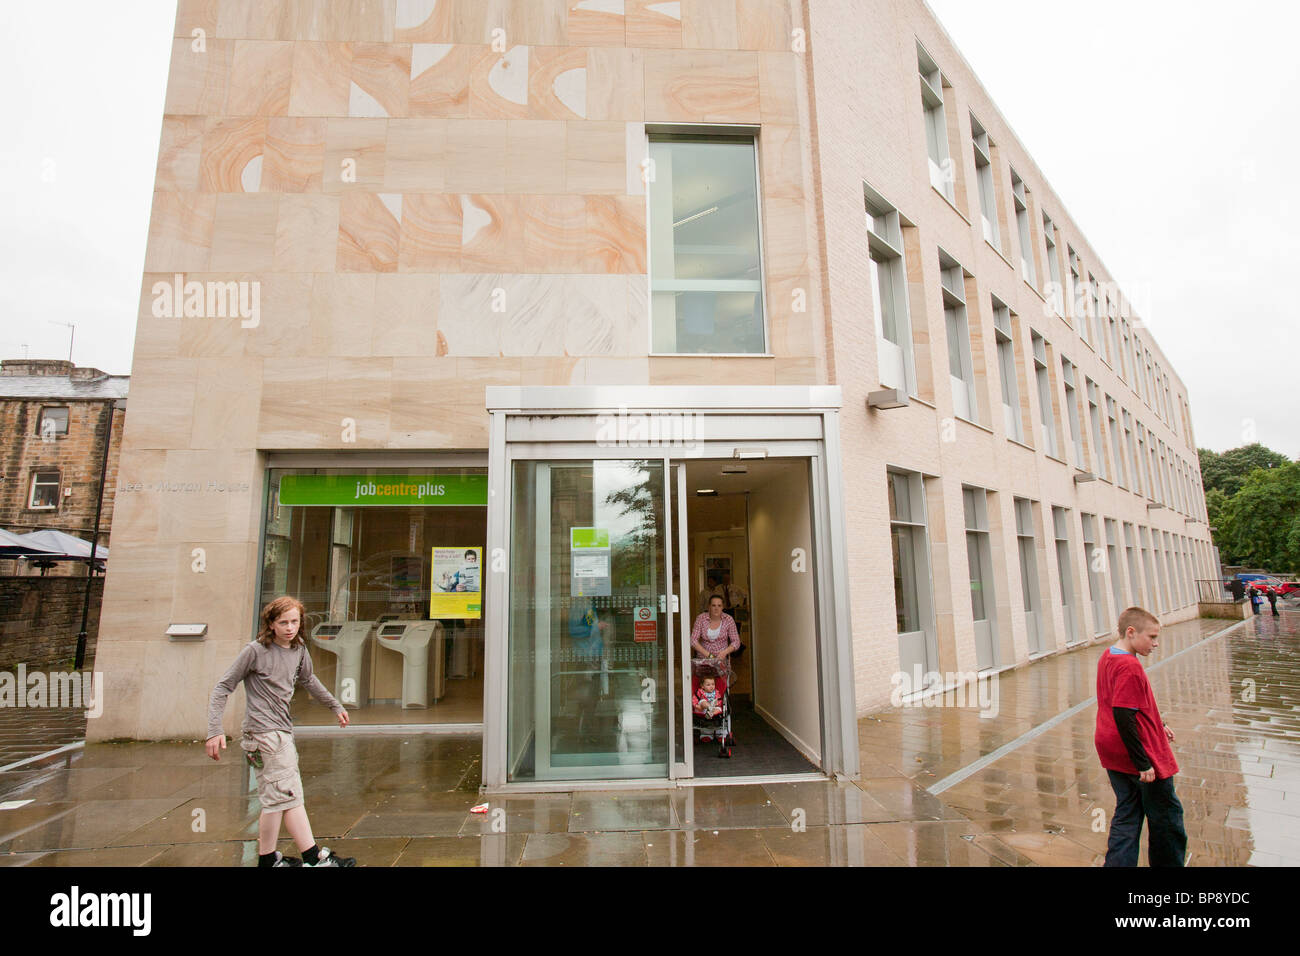 The job centre in Burnley, Lancashire, UK, an area of high unemployment. - Stock Image